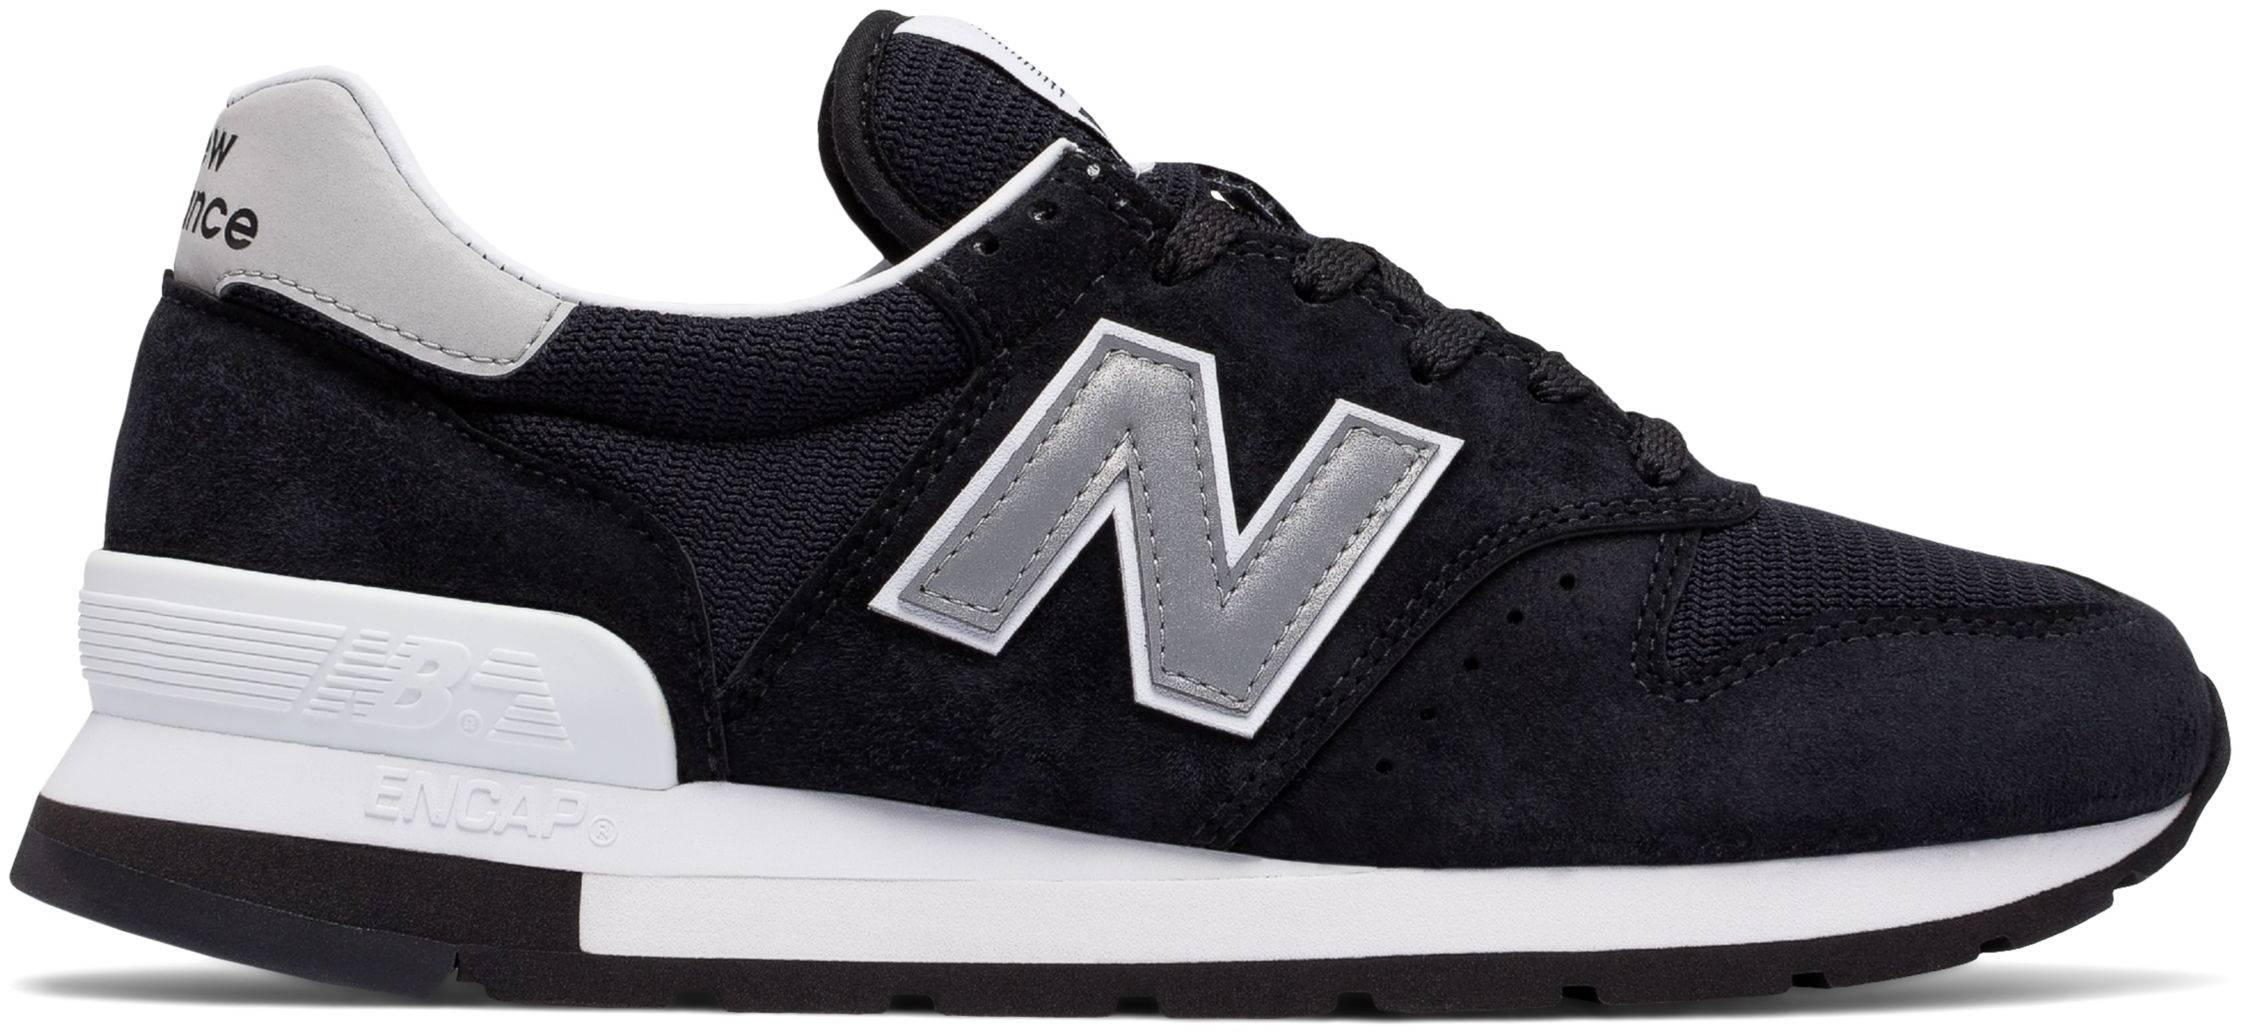 Only $160 + Review of New Balance 995